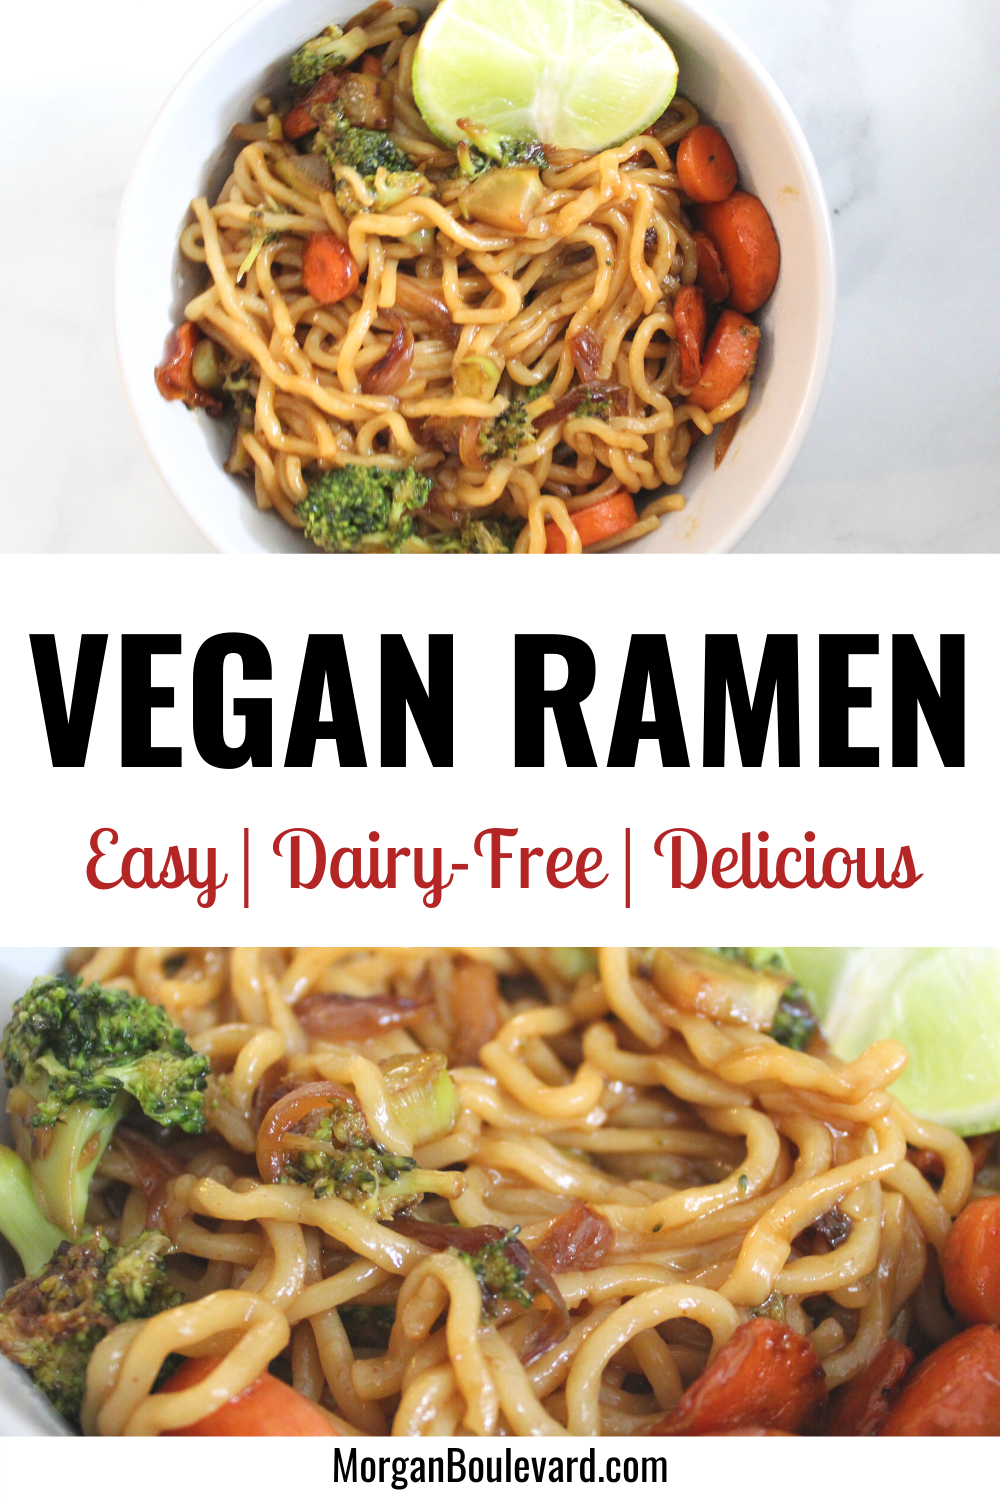 Vegan ramen noodle stir fry recipe